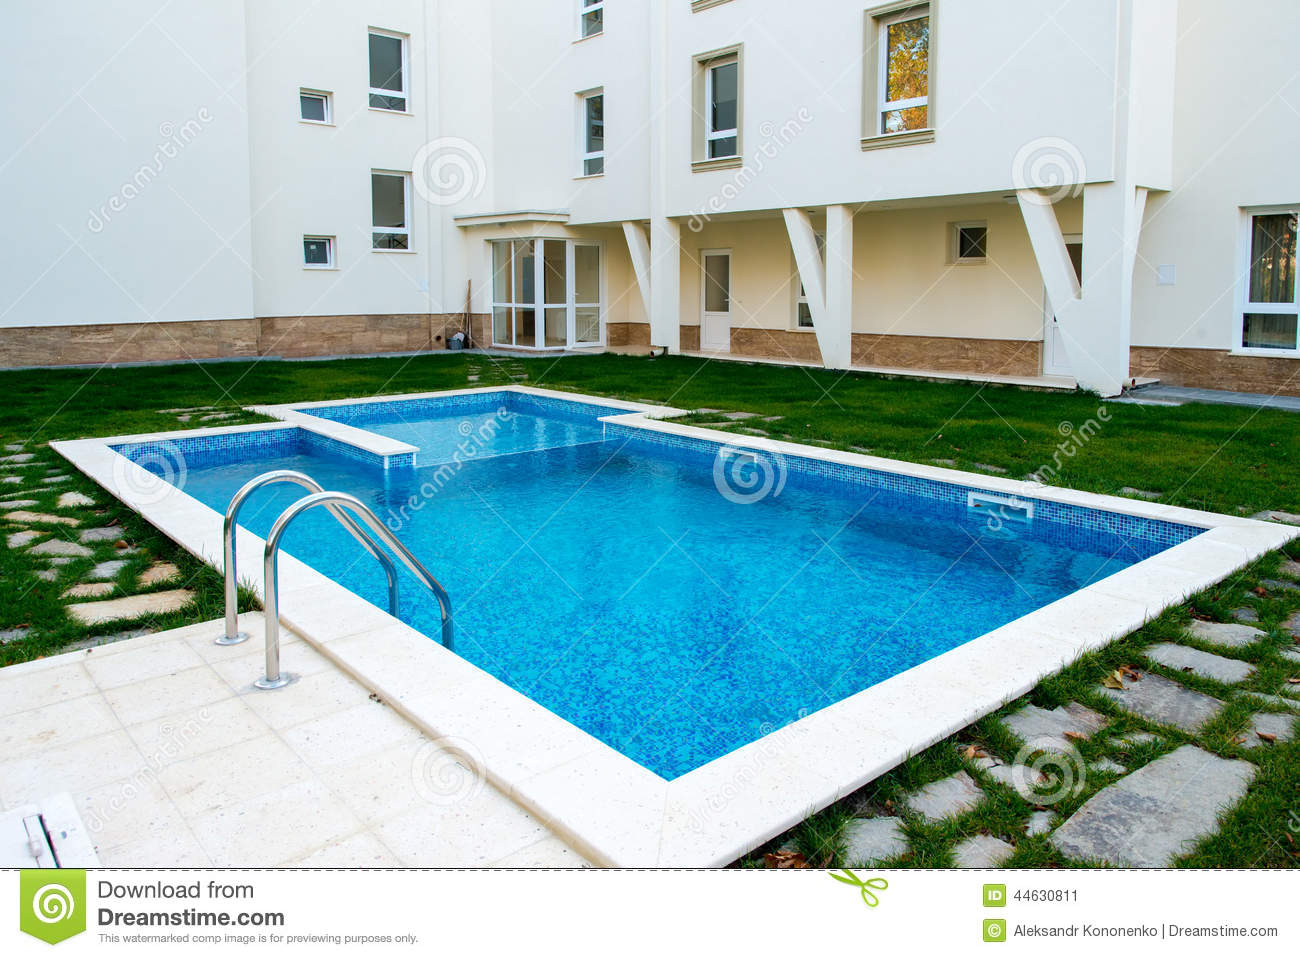 Beautiful swimming pool filled with water in a residential Swimming pool beautiful